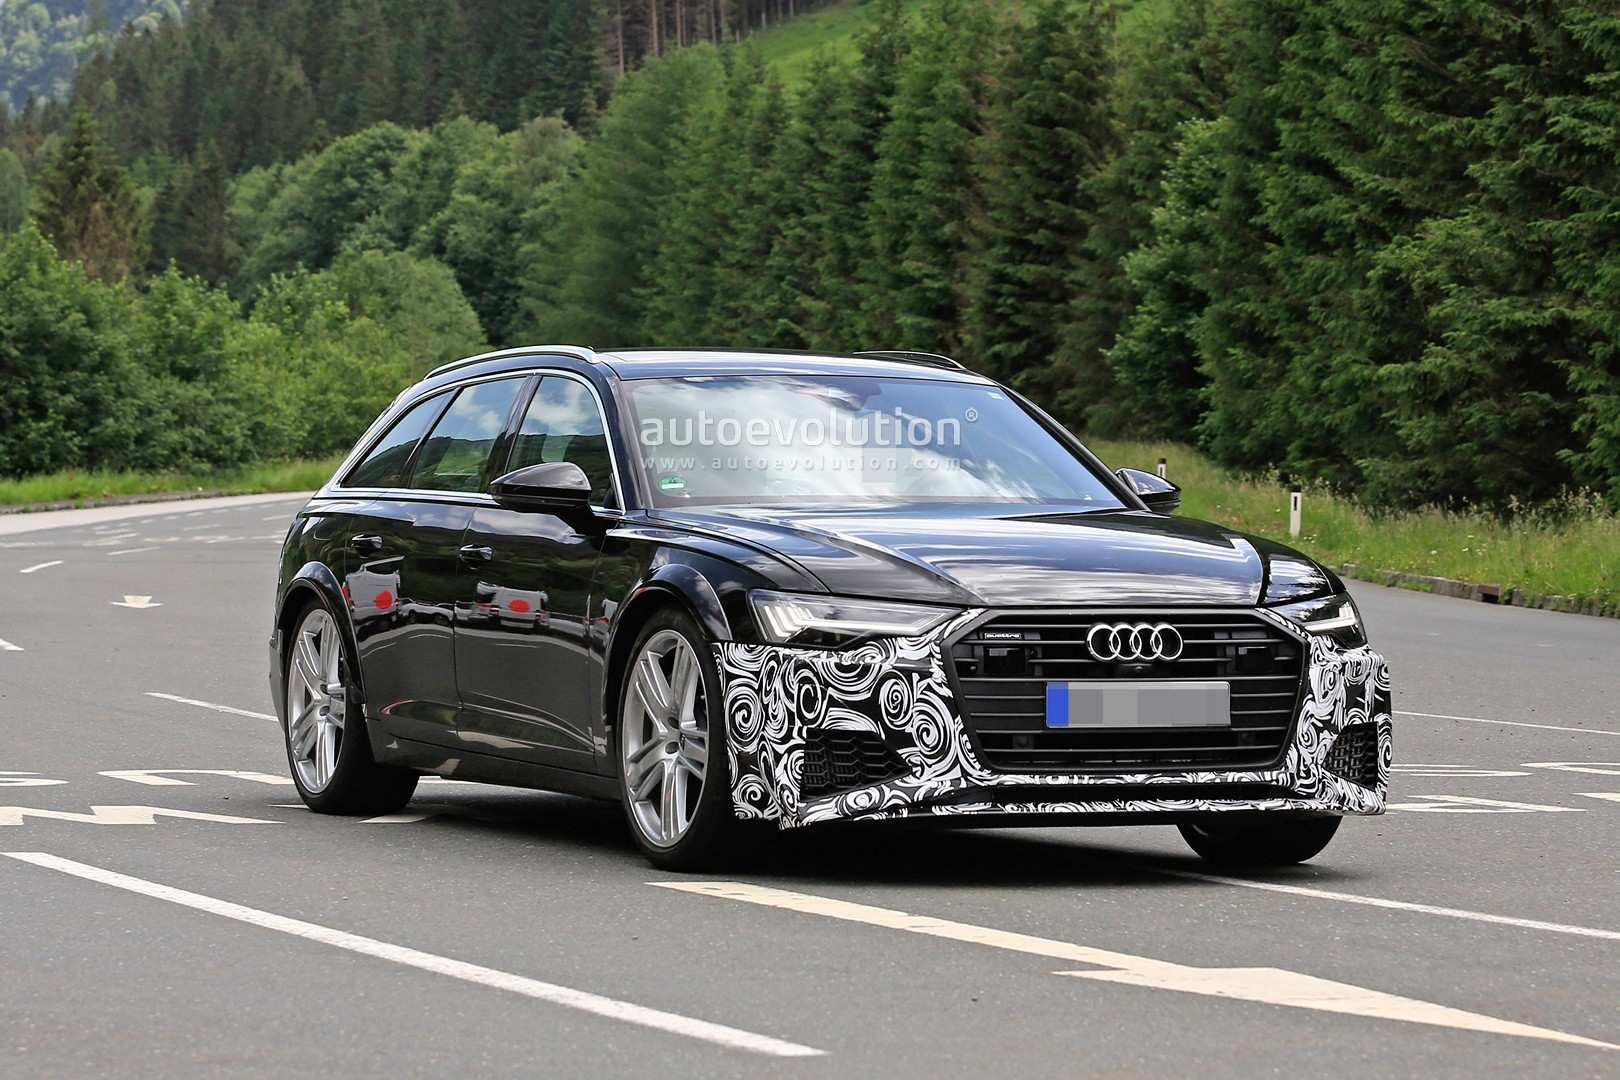 56 Best Audi Rs6 Avant 2020 Price